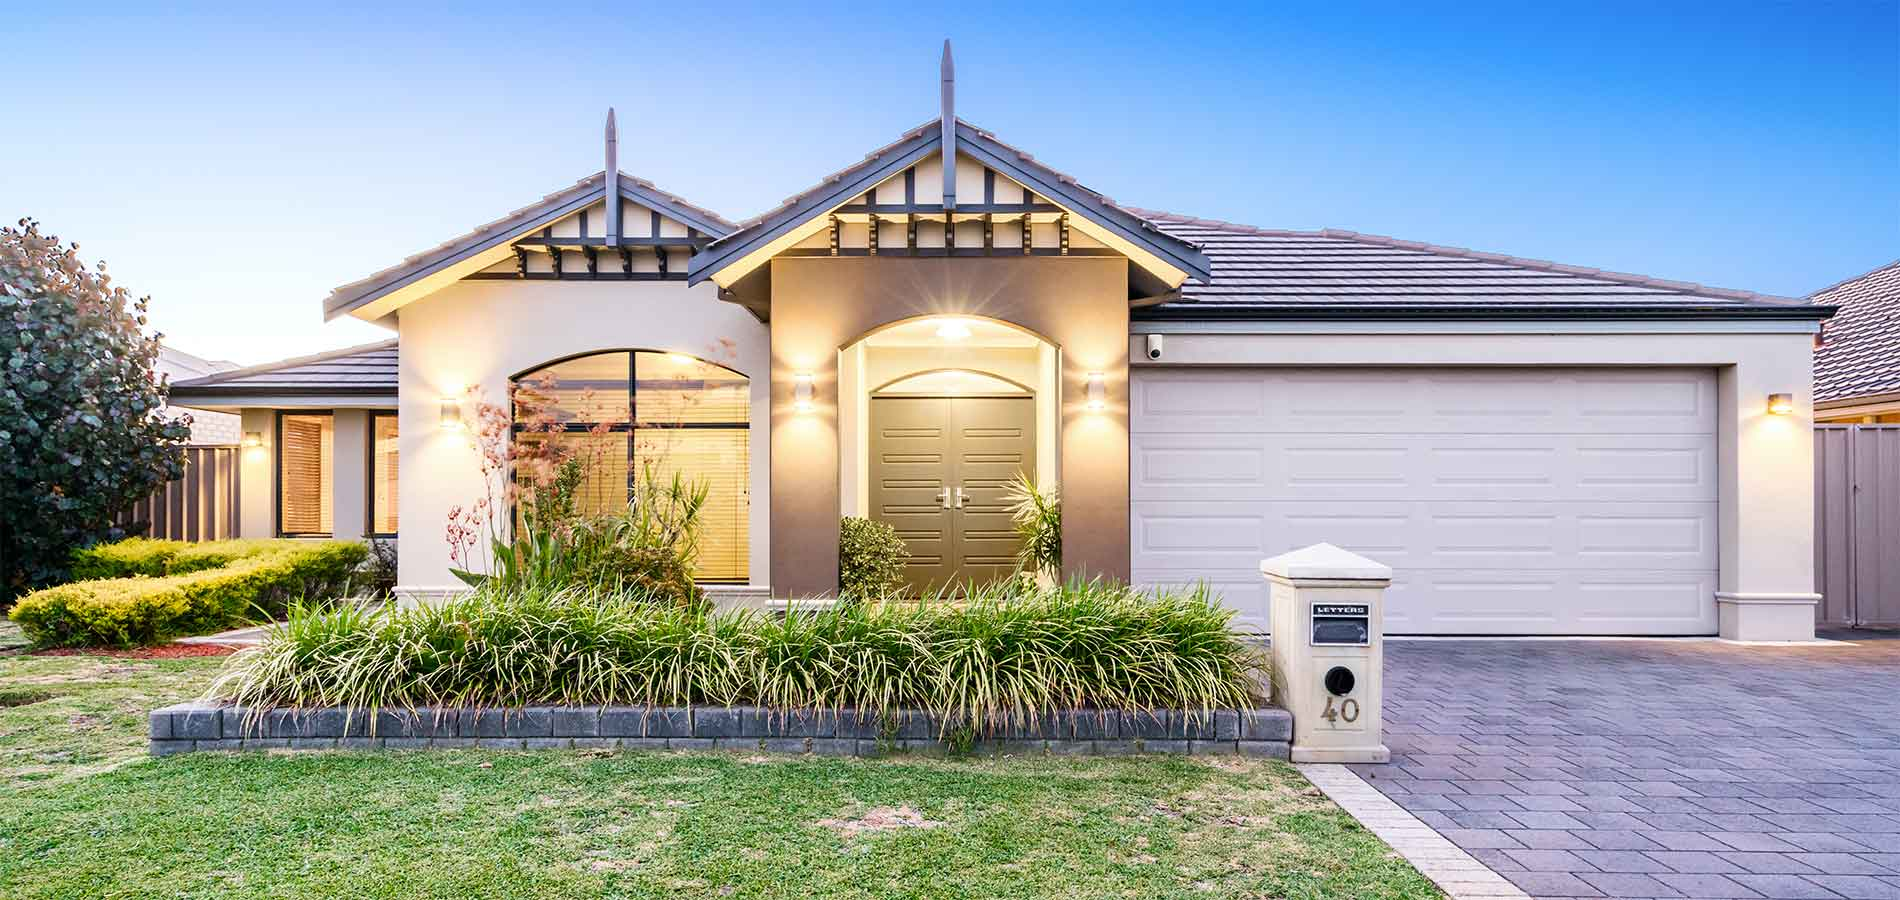 Potential Property Auctions Cool Off in Australia